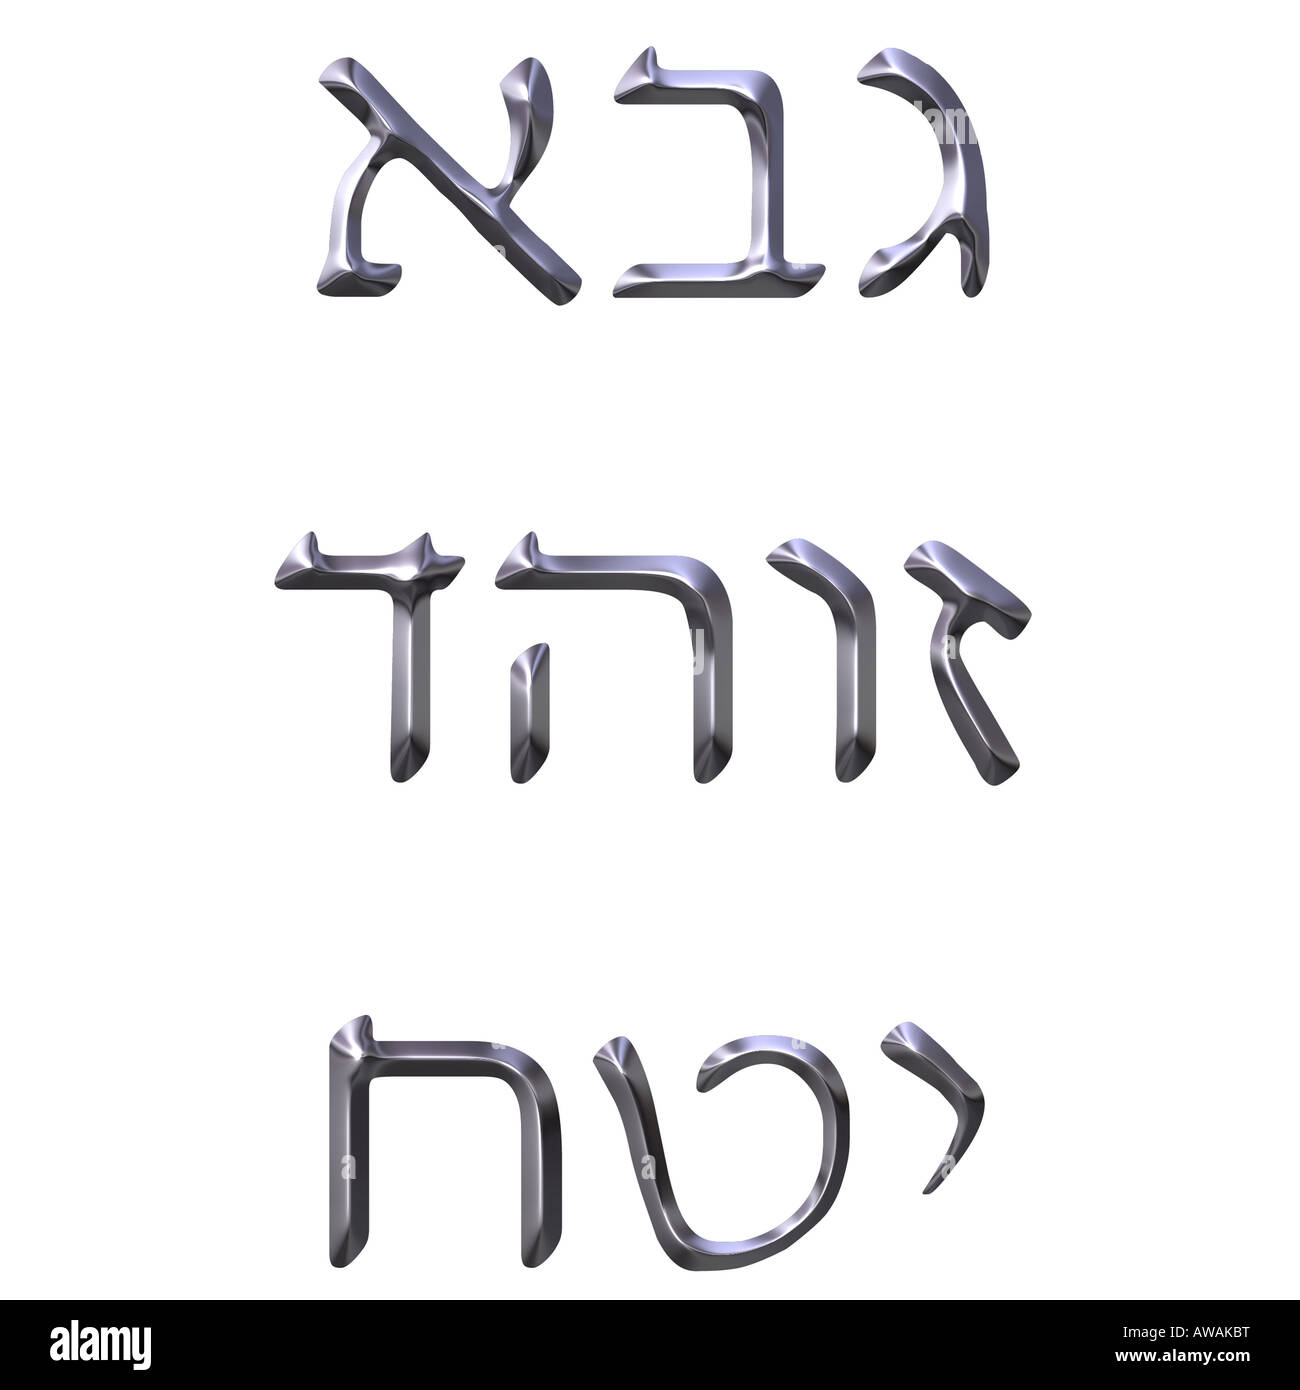 3d silver hebrew numbers - Stock Image